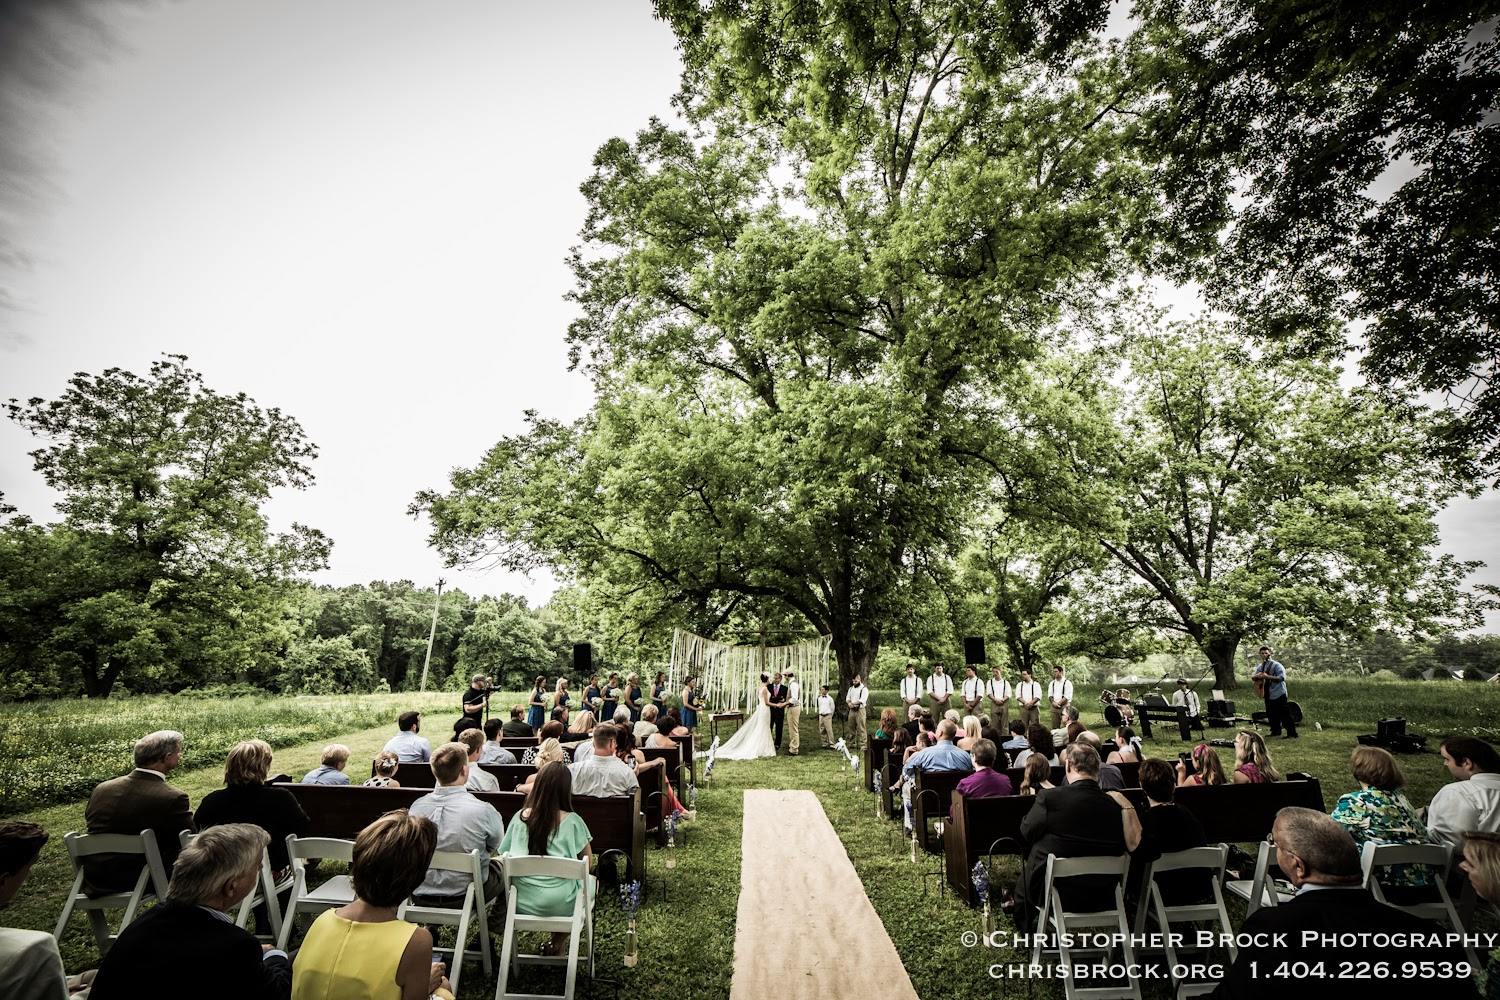 Christopher Brock Photography Shares Photography